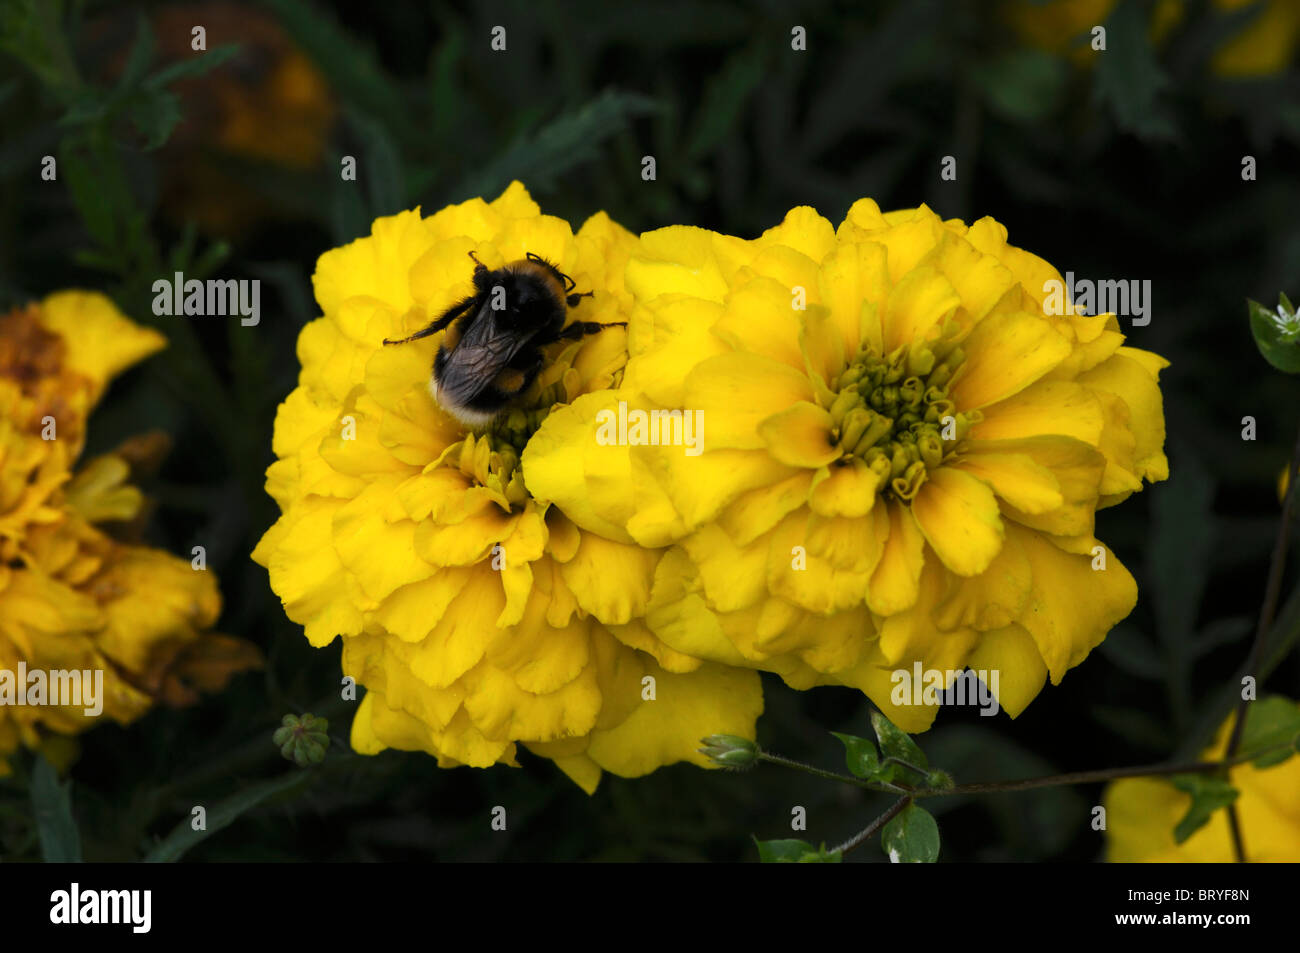 bumble bee on french marigold yellow bonanza flower bloom blossom - Stock Image